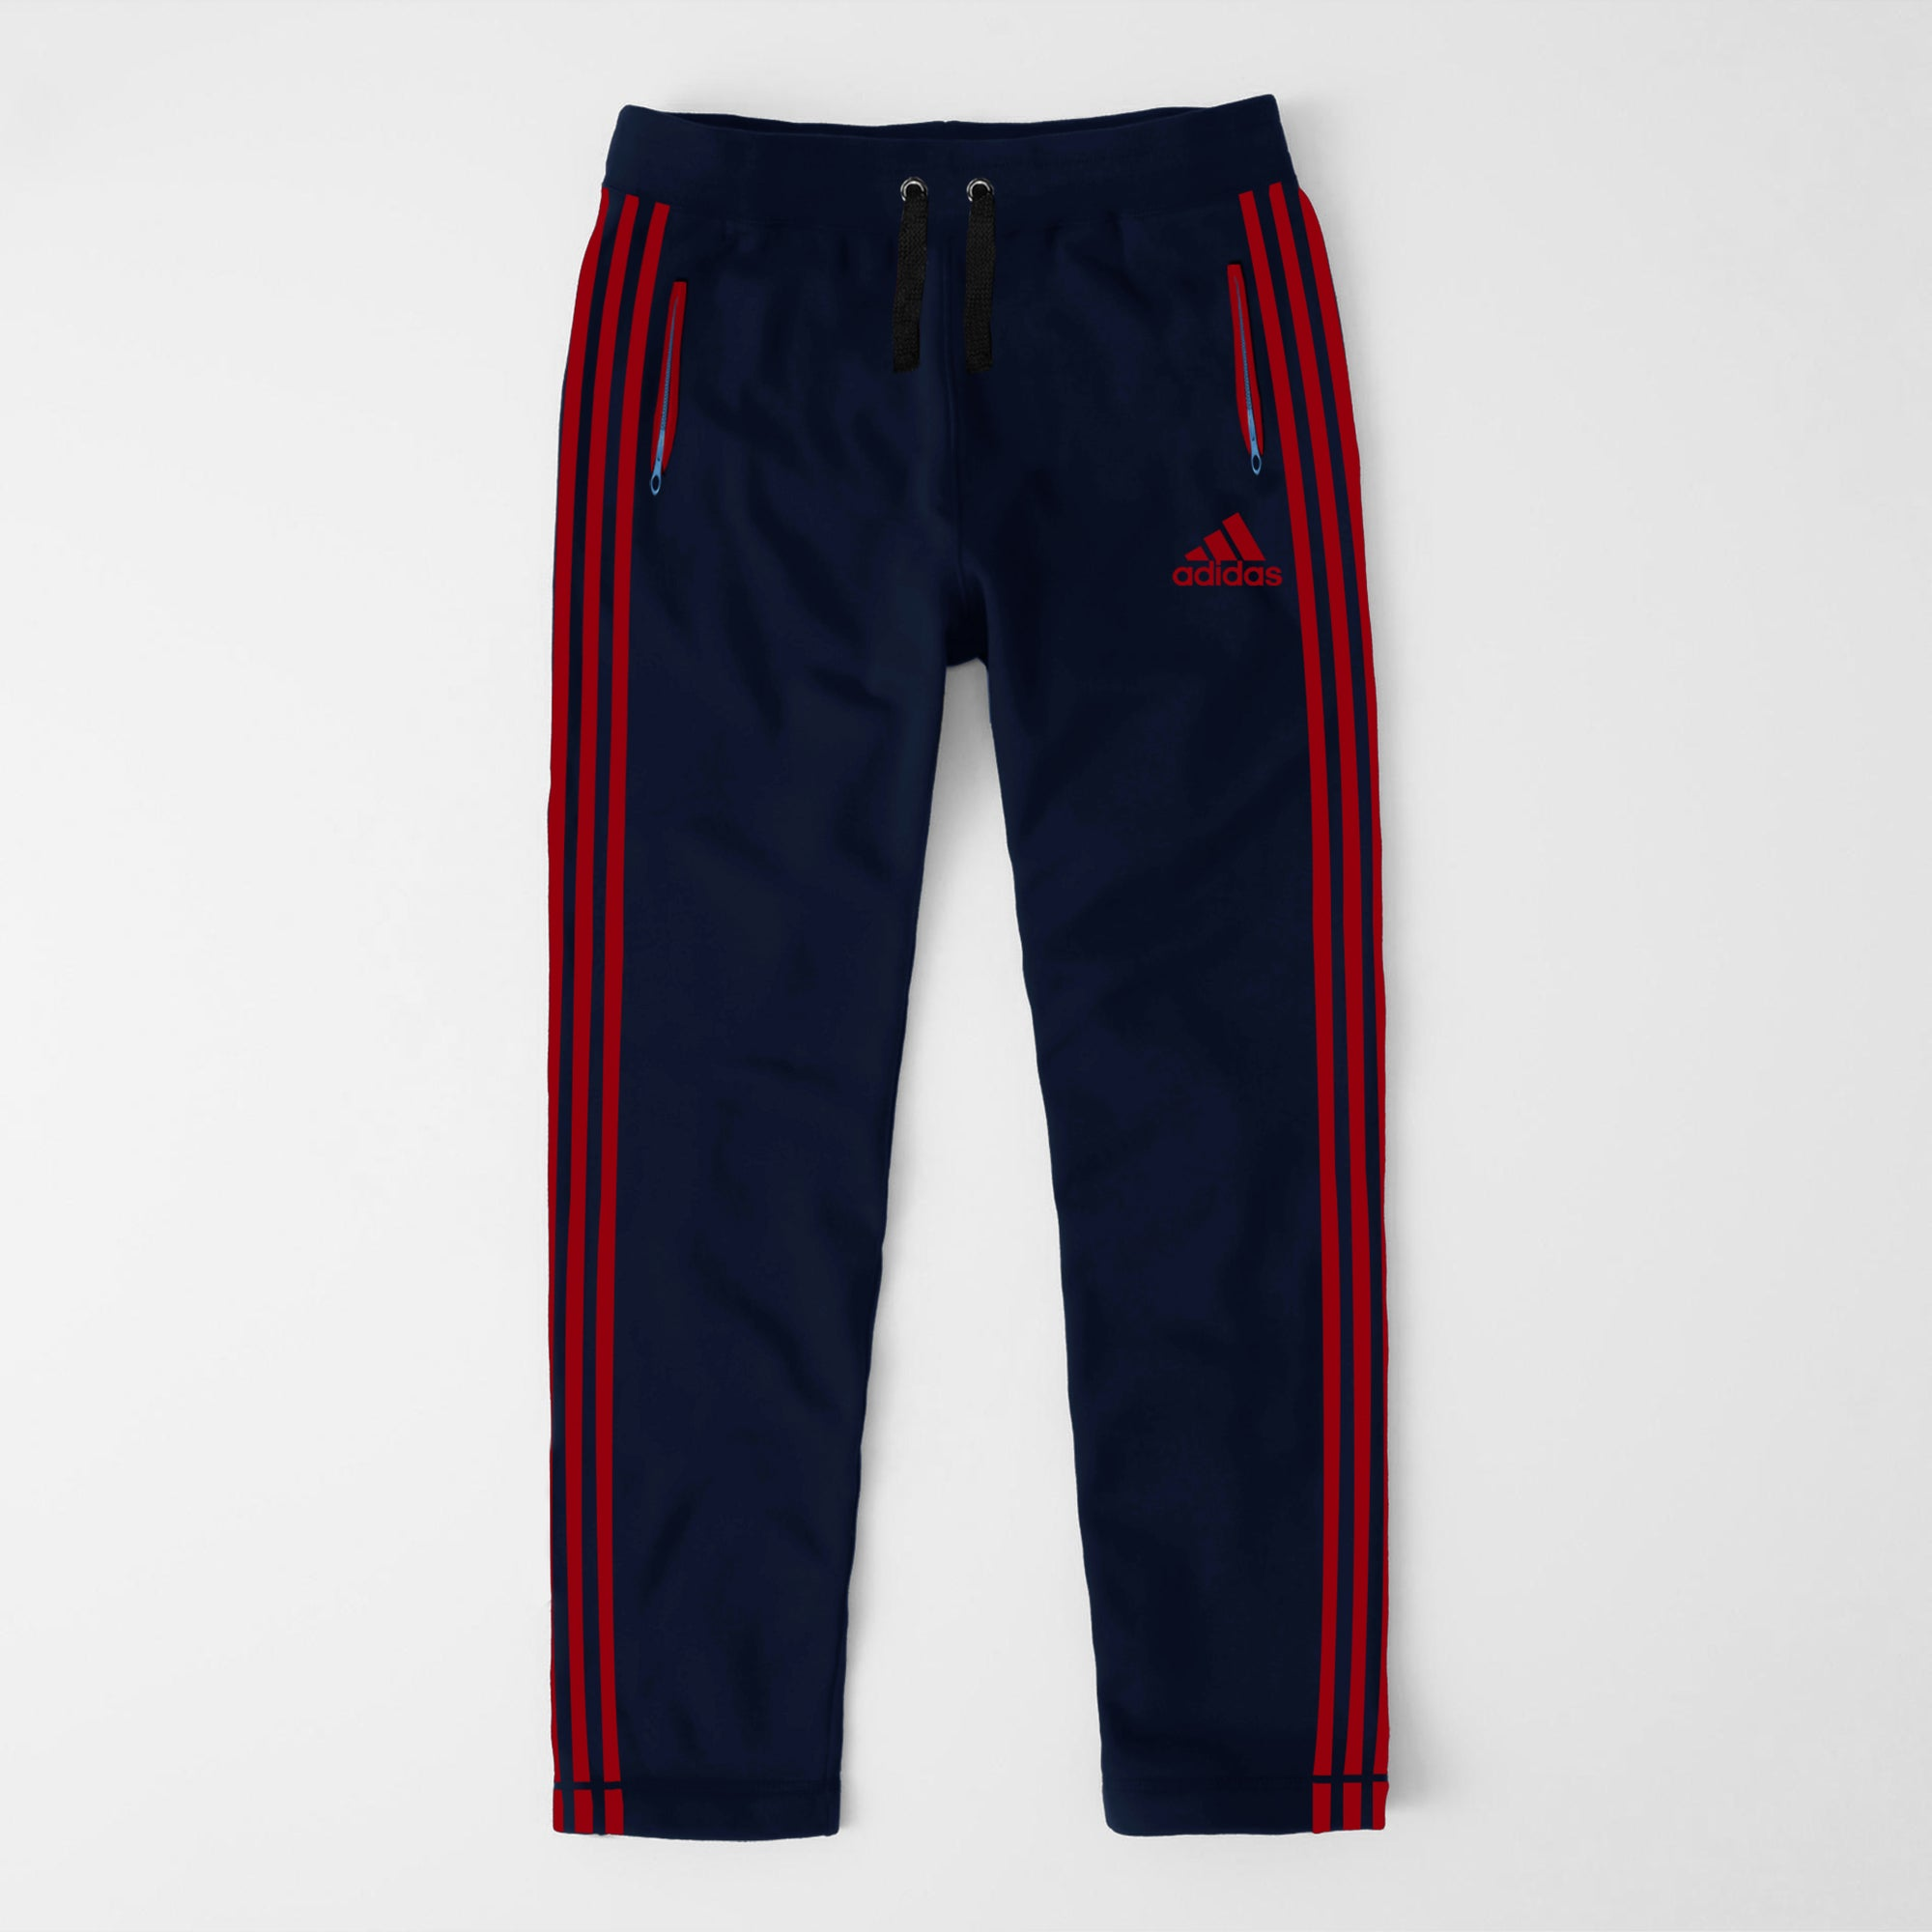 Adidas Single Jersey Regular Fit Trouser For Men-Dark Navy With Red Stripes-SP458